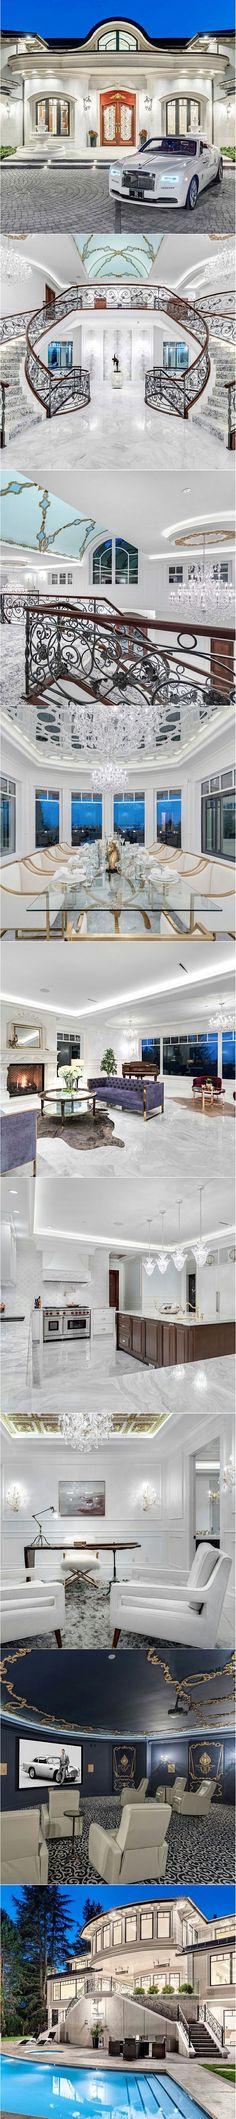 Swipe left to see more of this Stunning home for sale in Vancouver for million by The foyer of the my previous post belongs to this Home sweet Home… couldn't resist not to show the complete Interior of this Beautiful Home❣ Whats your Luxury Life, Luxury Living, Luxury Homes, Dream Mansion, House Goals, Life Goals, Architecture, My Dream Home, Future House